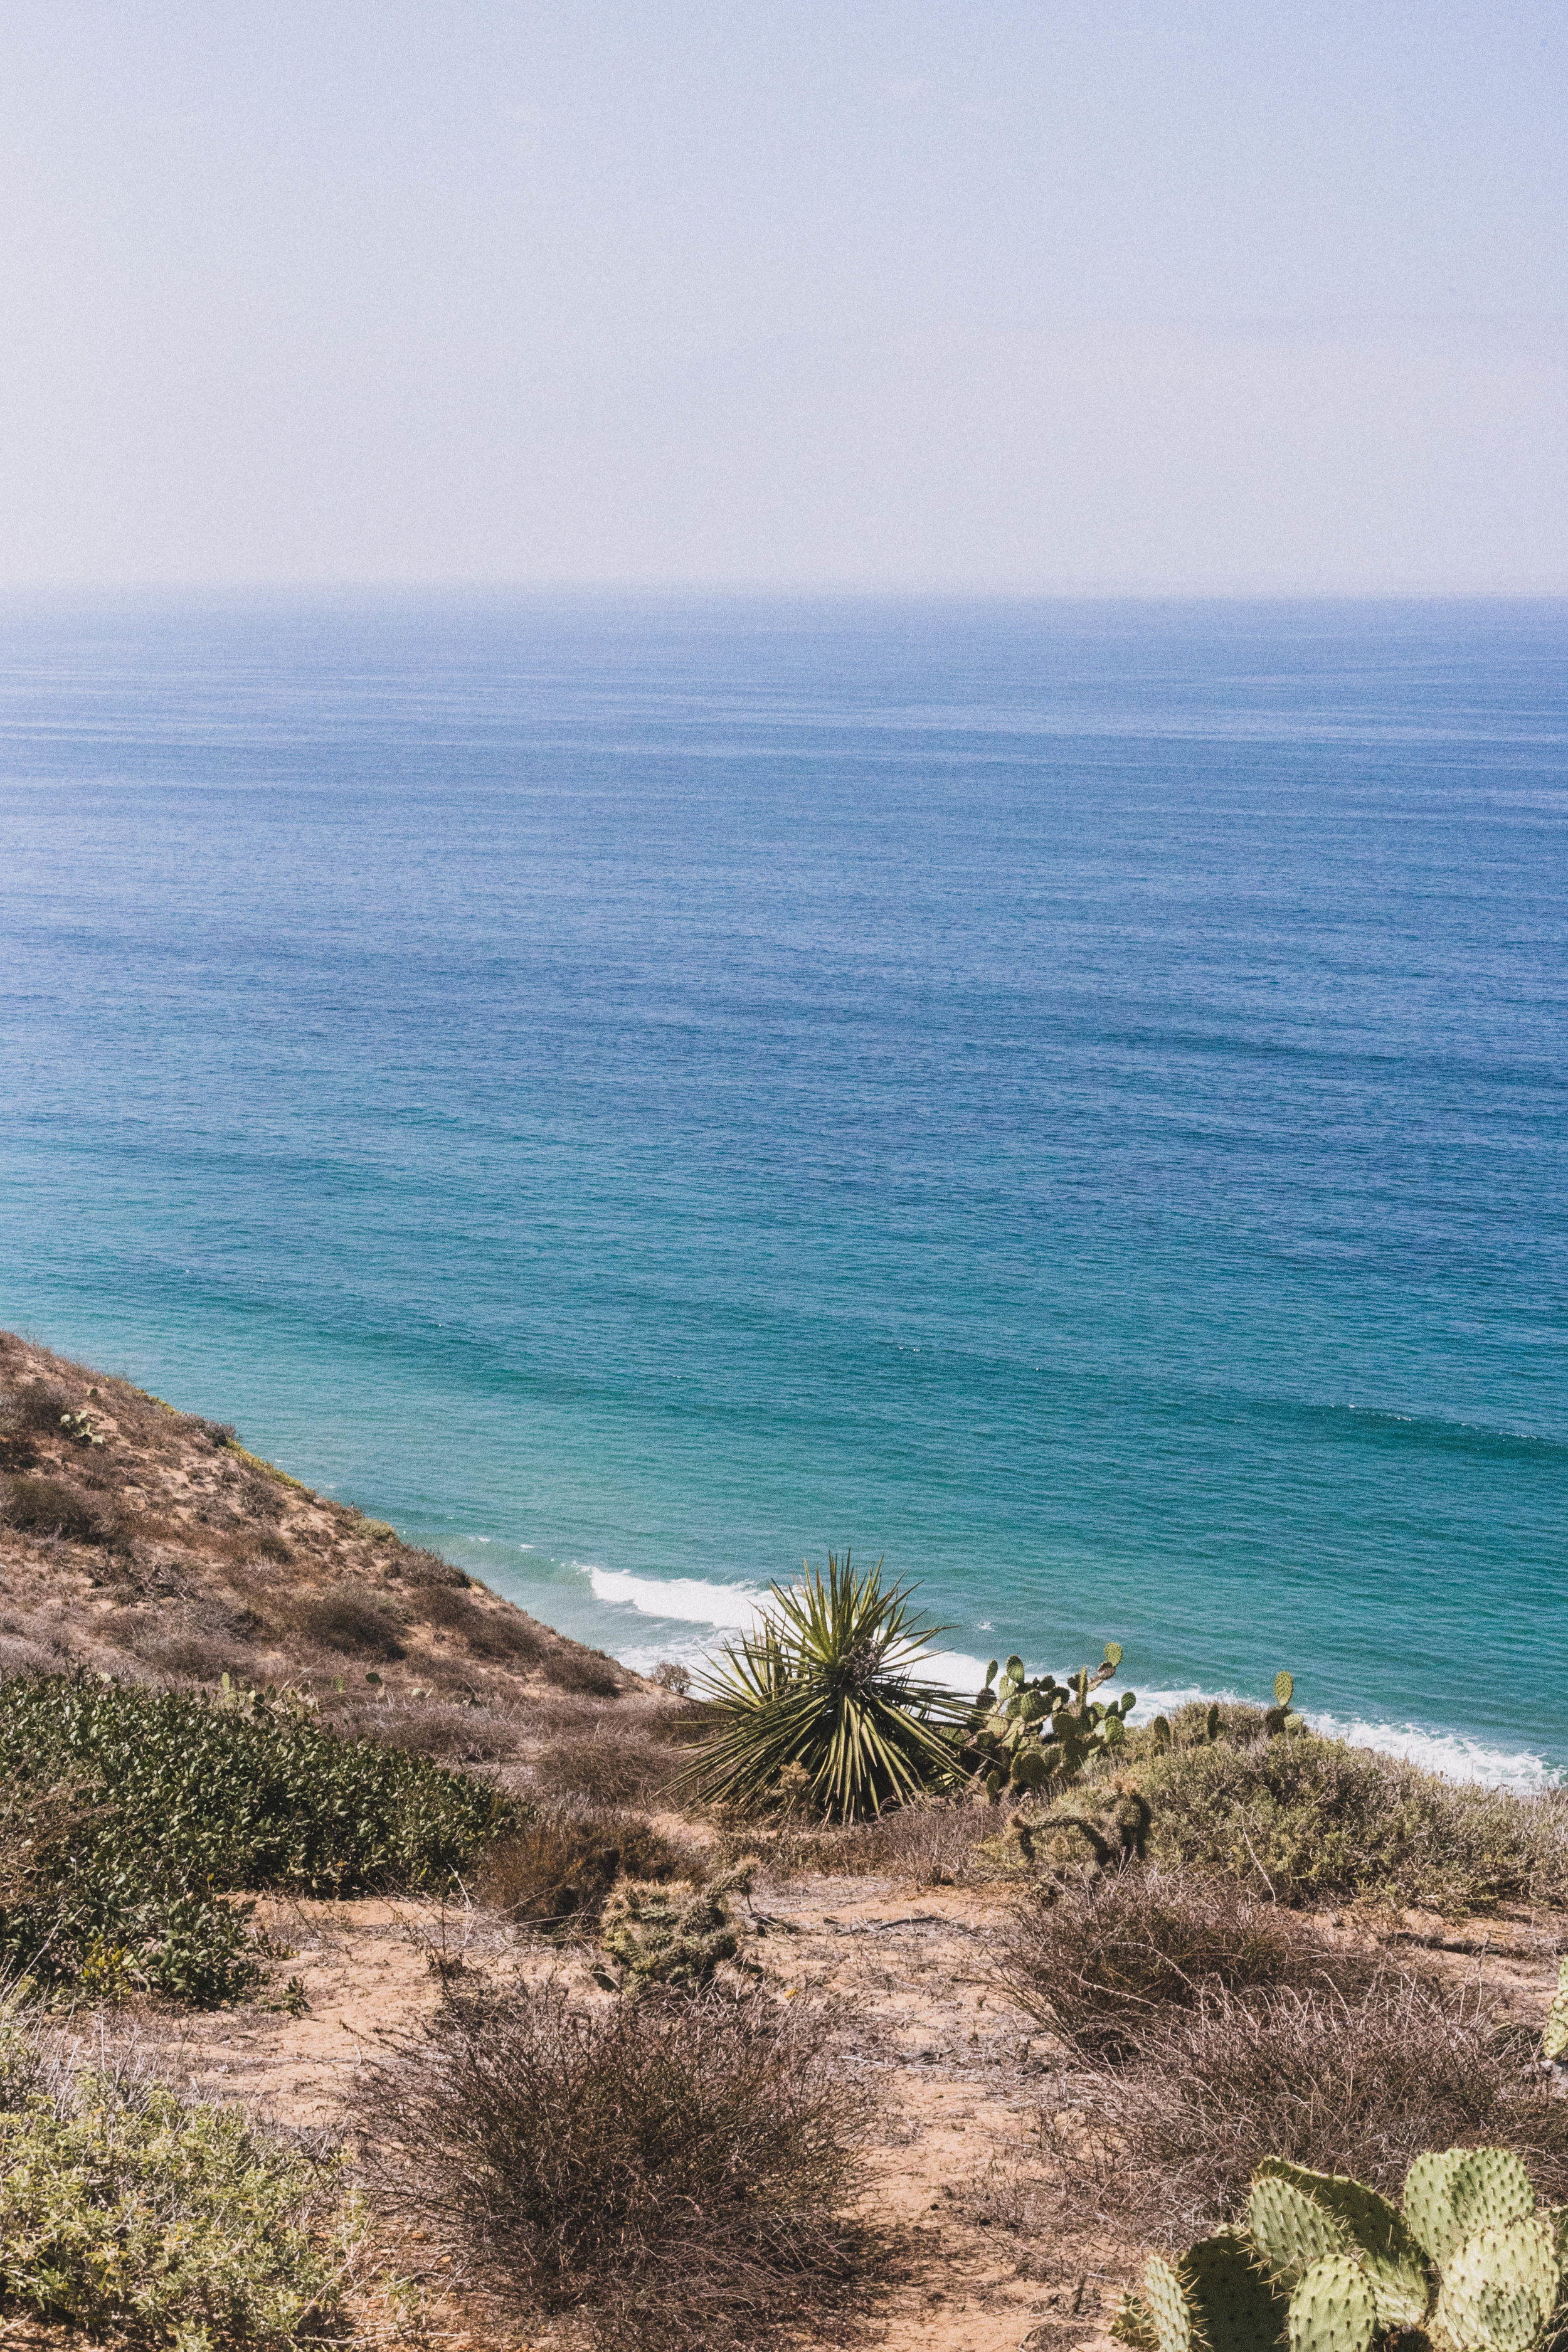 Views from Torrey Pines (San Diego City Guide)